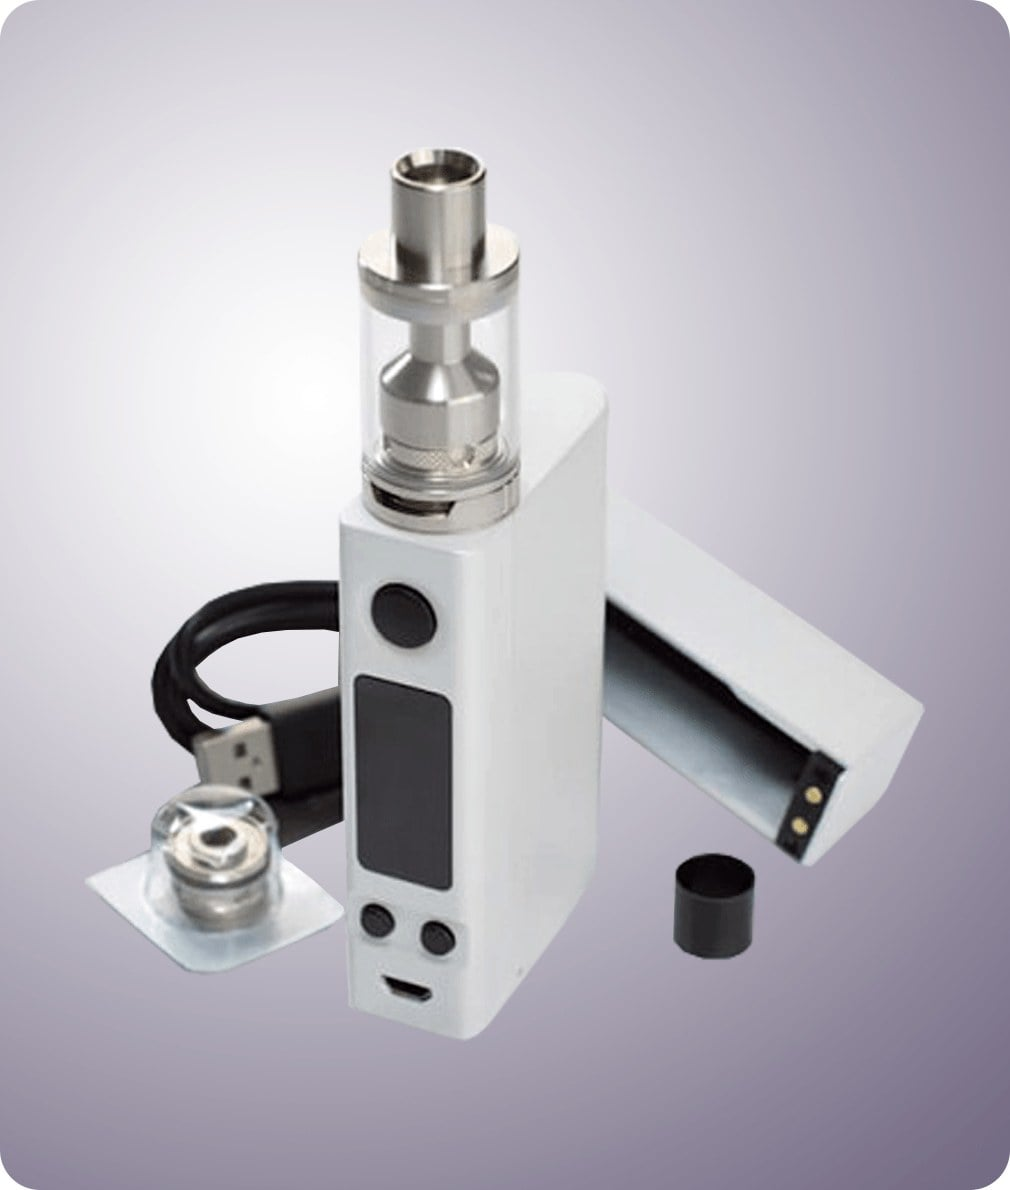 evic vtc dual instructions